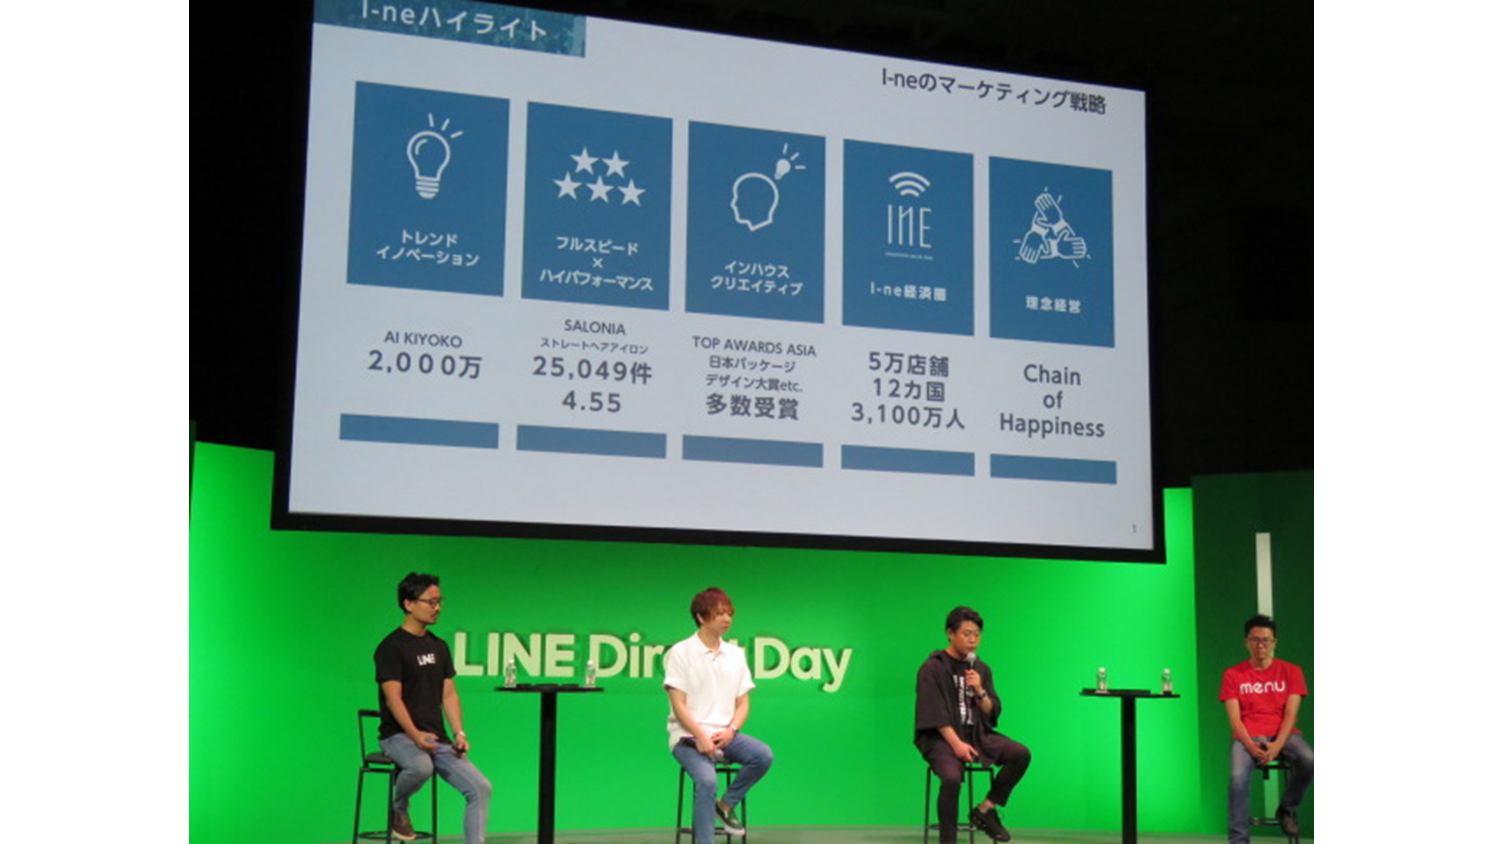 LINEDirectDay session2 登壇者